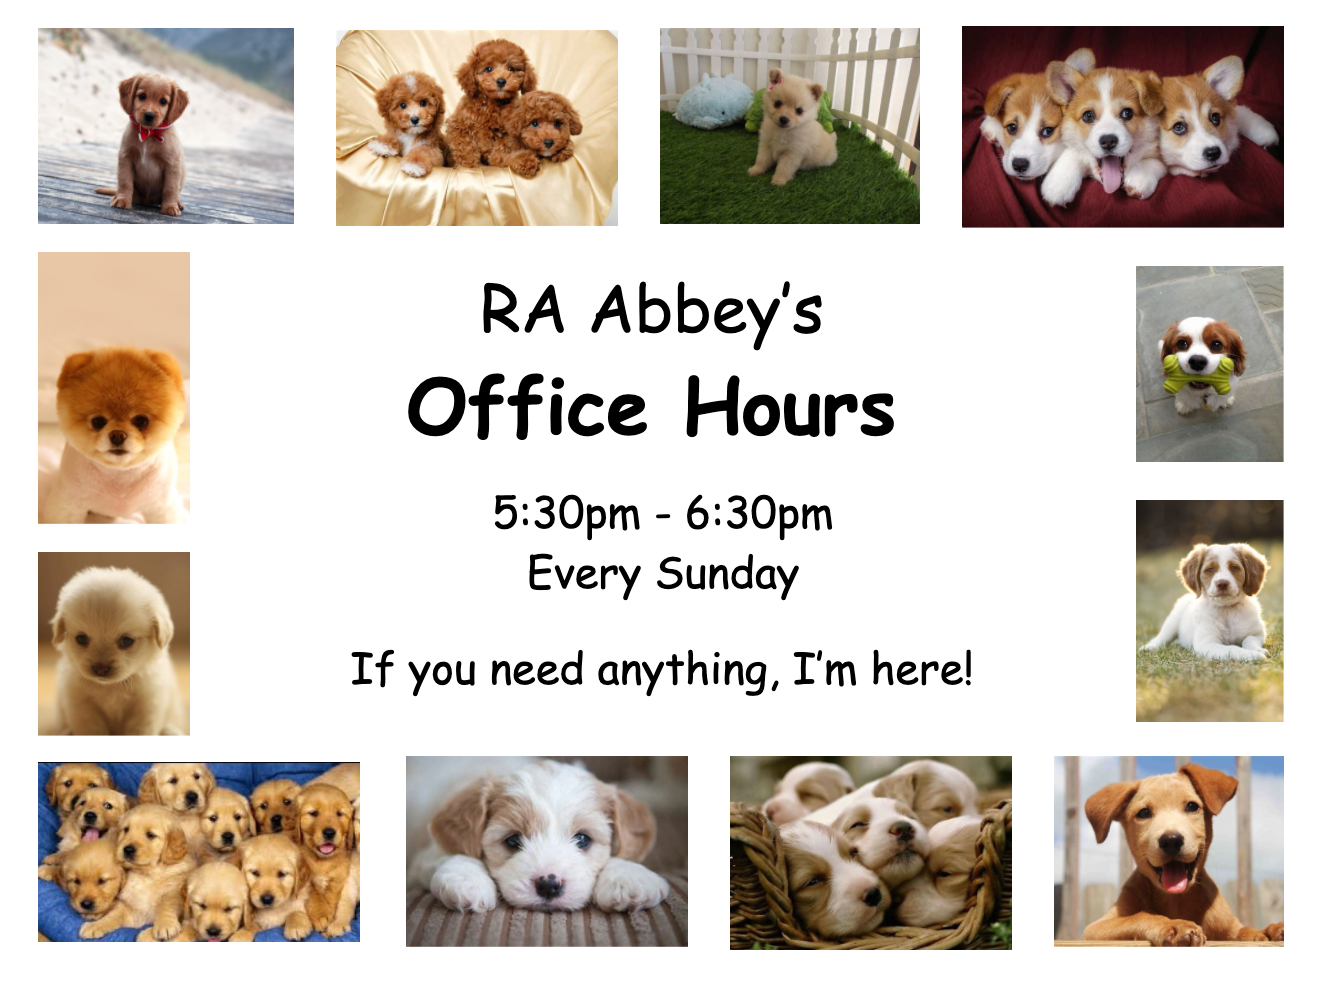 RA Abbey's Office Hours